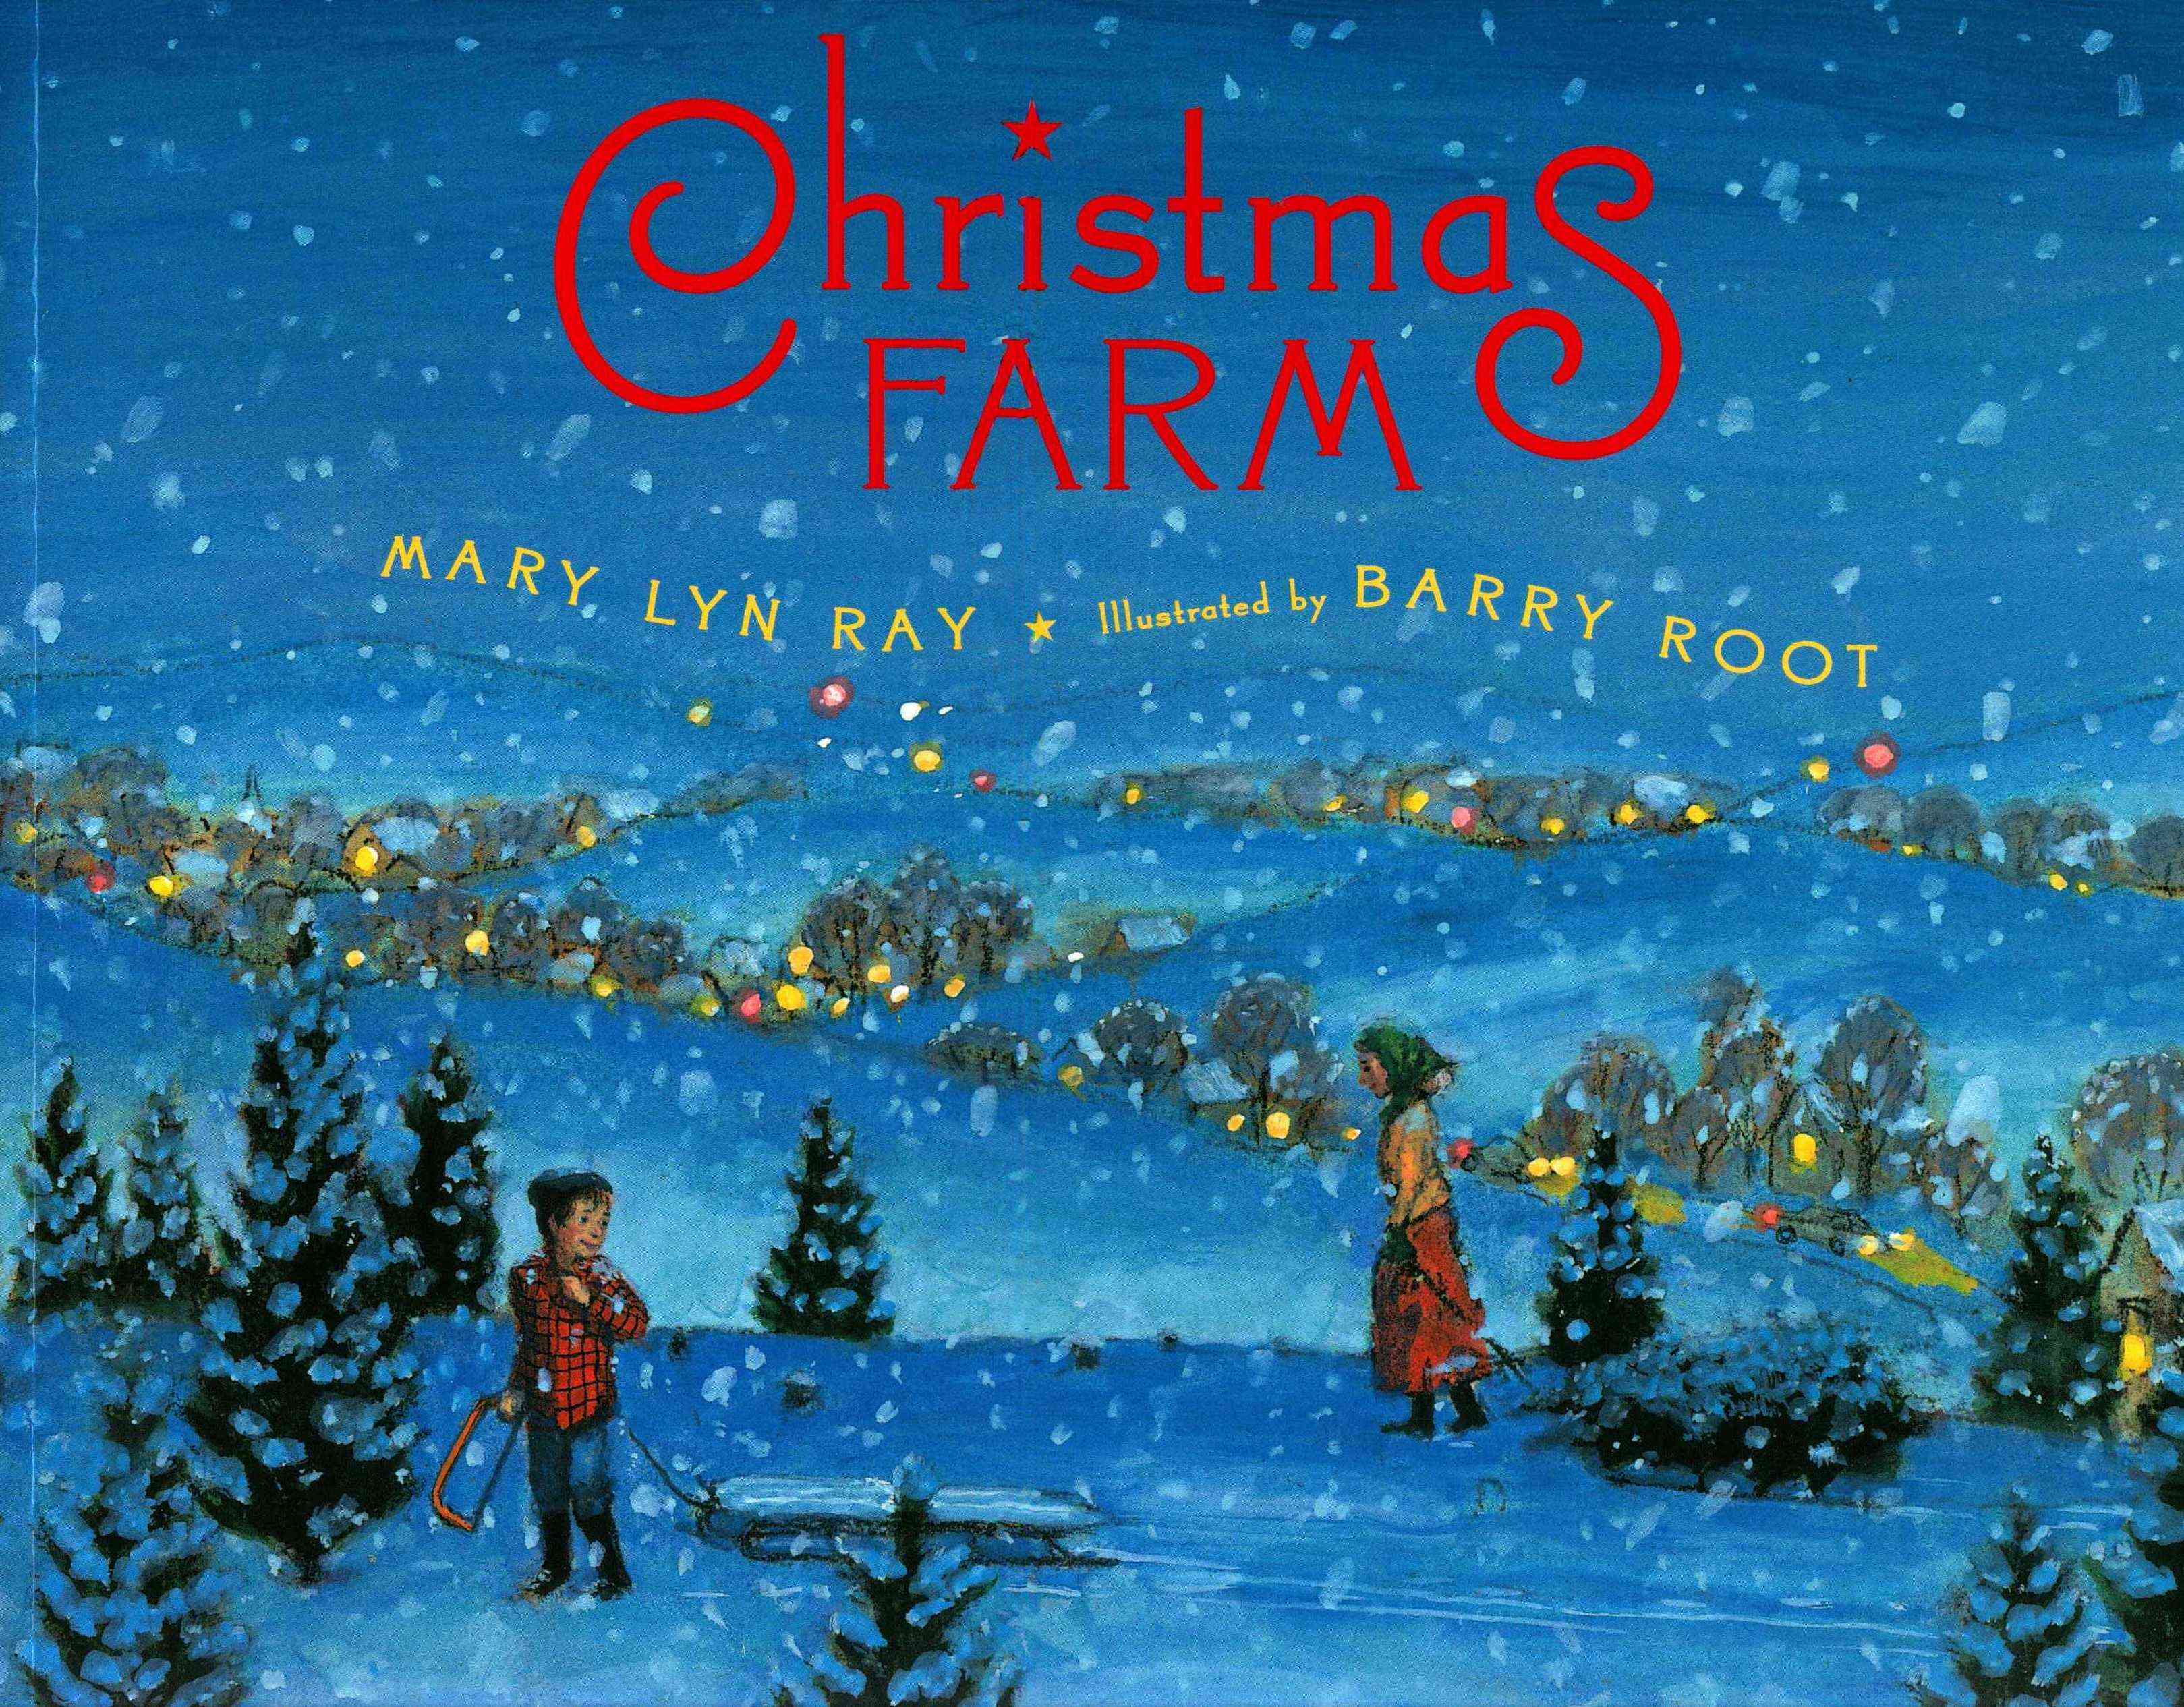 Christmas Farm By Ray, Mary Lyn/ Root, Barry (ILT)